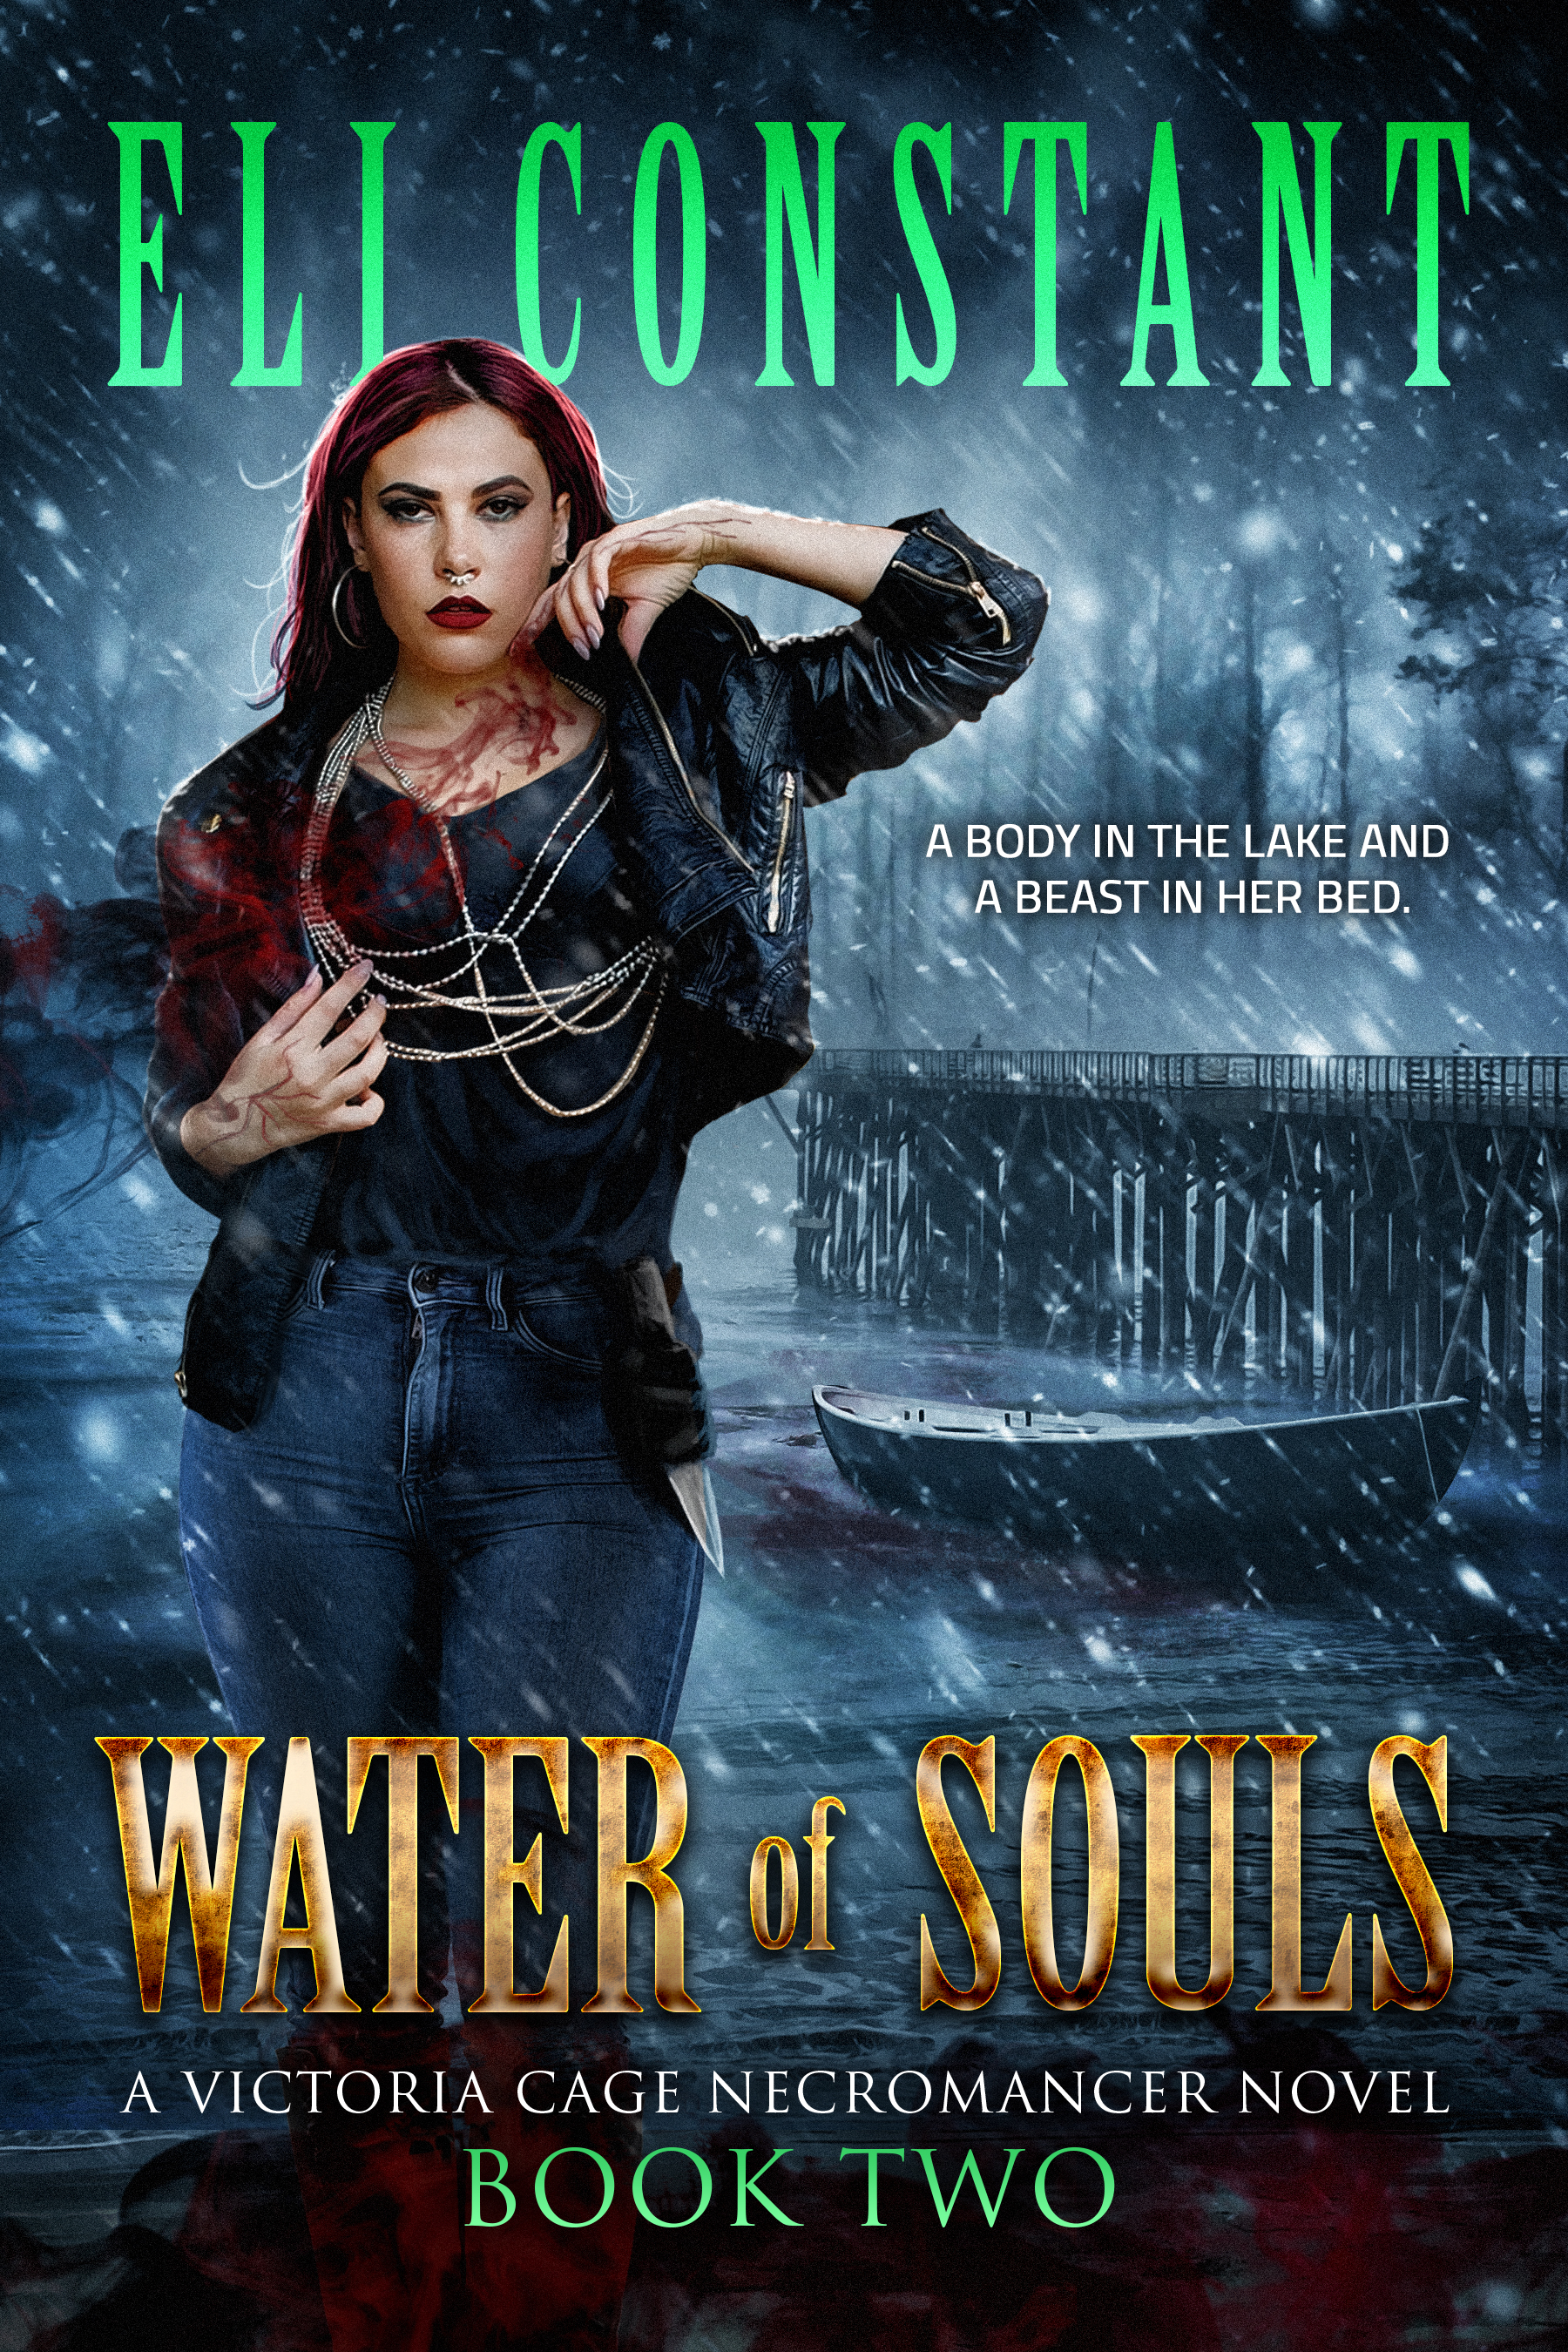 Water of Souls